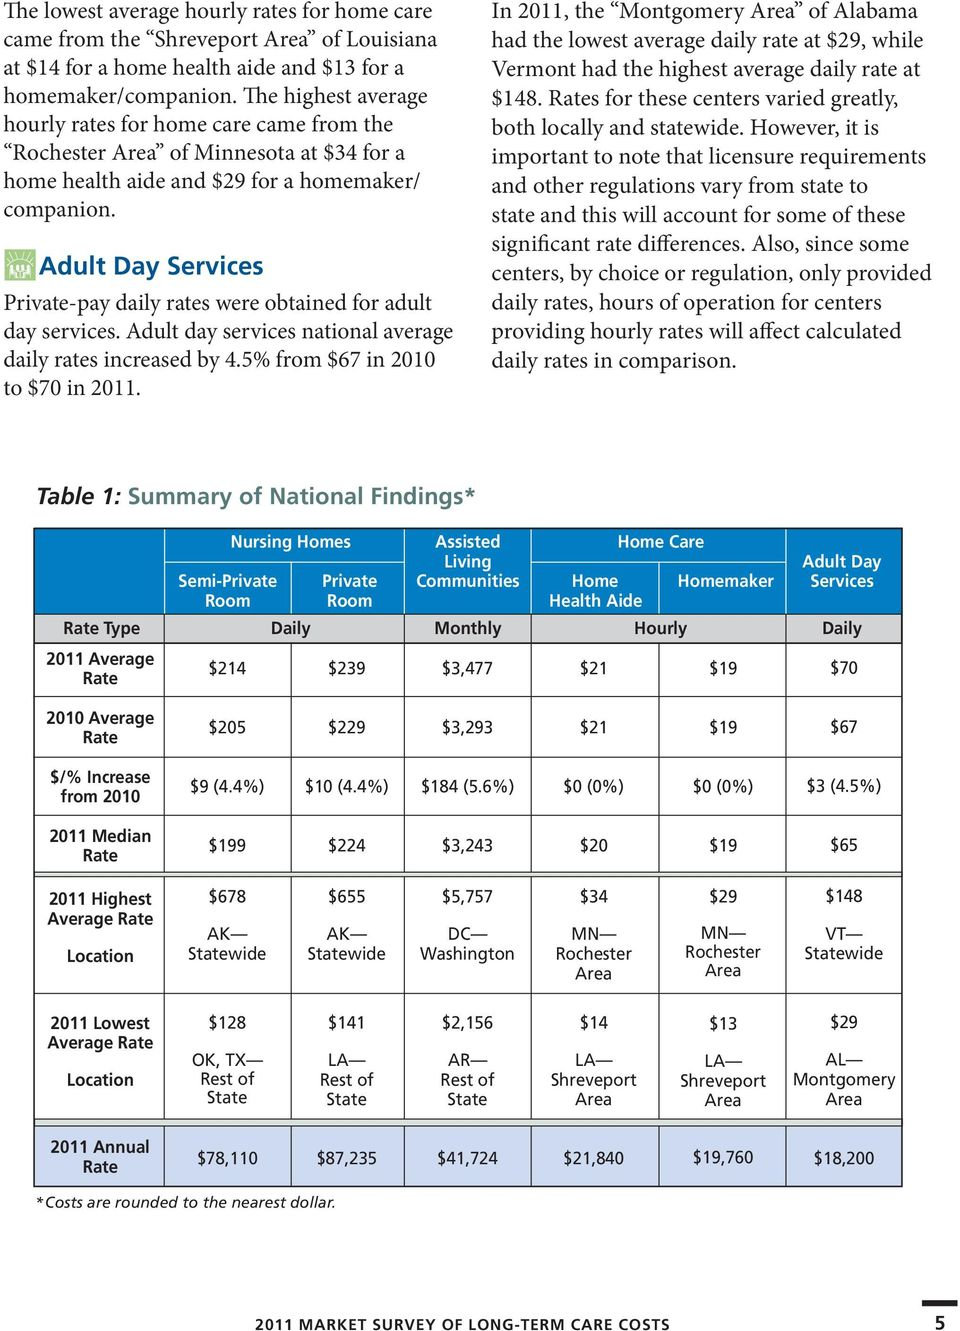 Adult Day Services Private-pay daily rates were obtained for adult day services. Adult day services national average daily rates increased by 4.5% from $67 in 2010 to $70 in 2011.